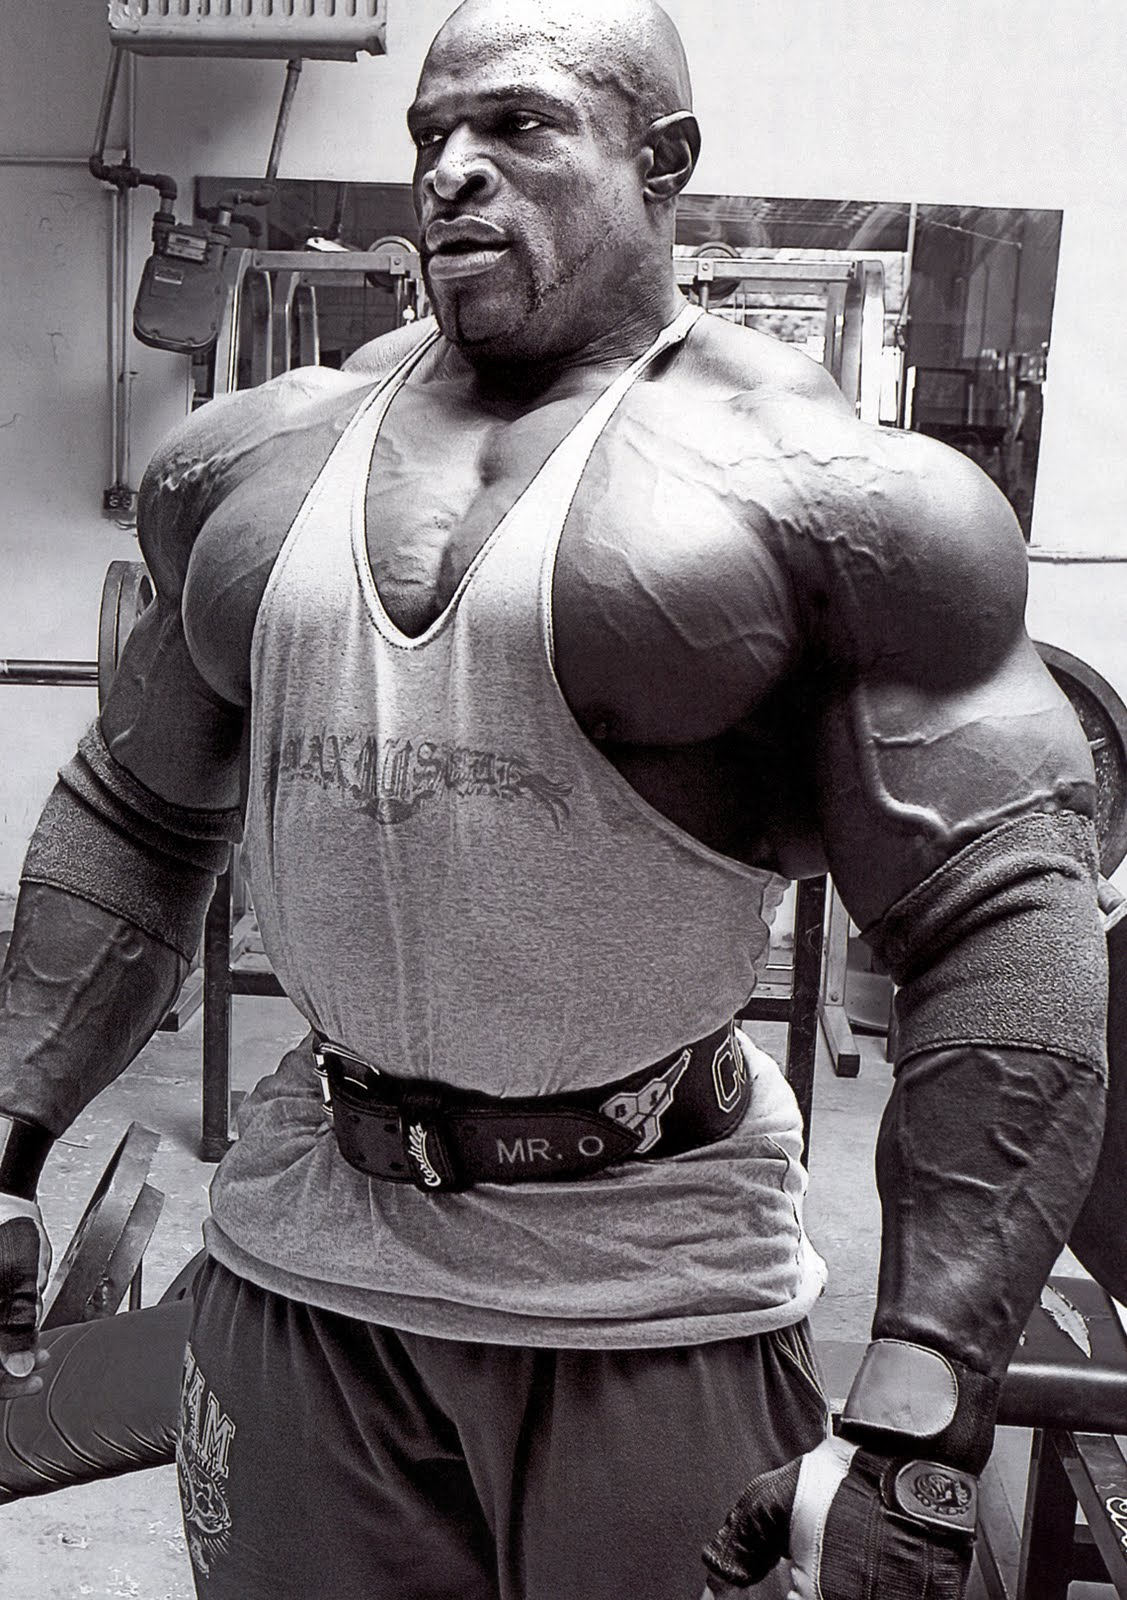 Muscle Wallpapers Mr Olympia Ronnie coleman 1127x1600